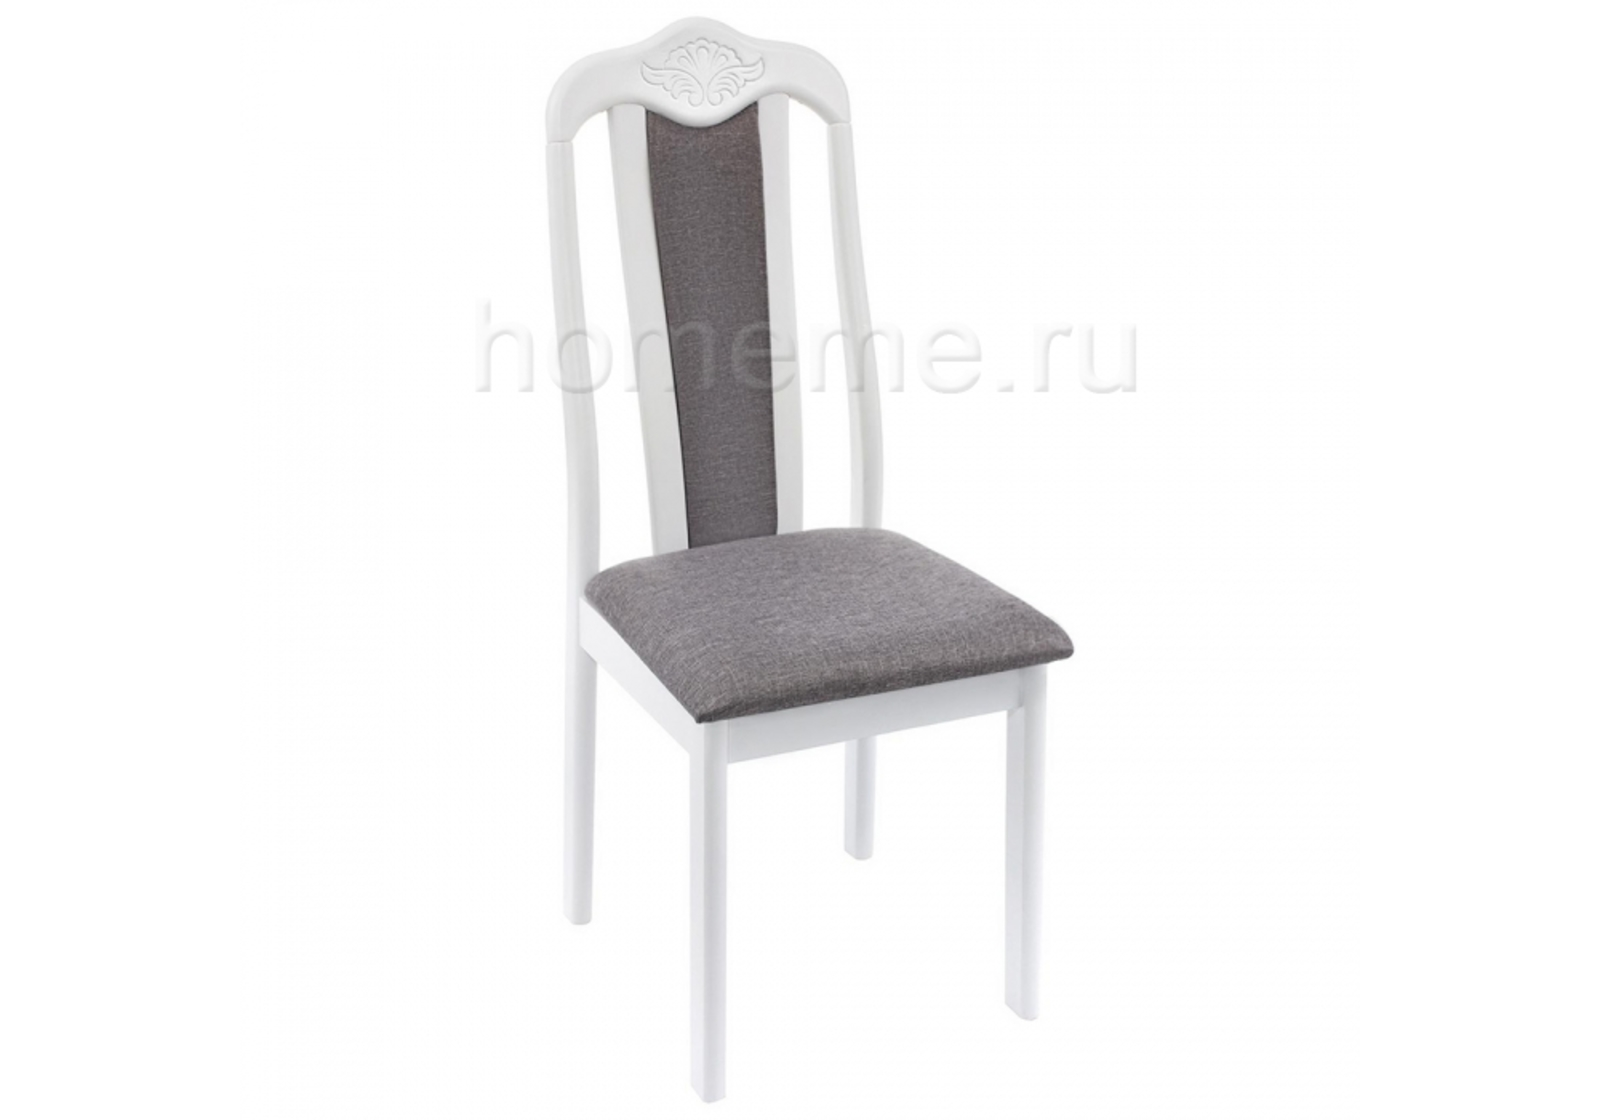 Стул HomeMe Aron Soft white / light grey 1994 от Homeme.ru